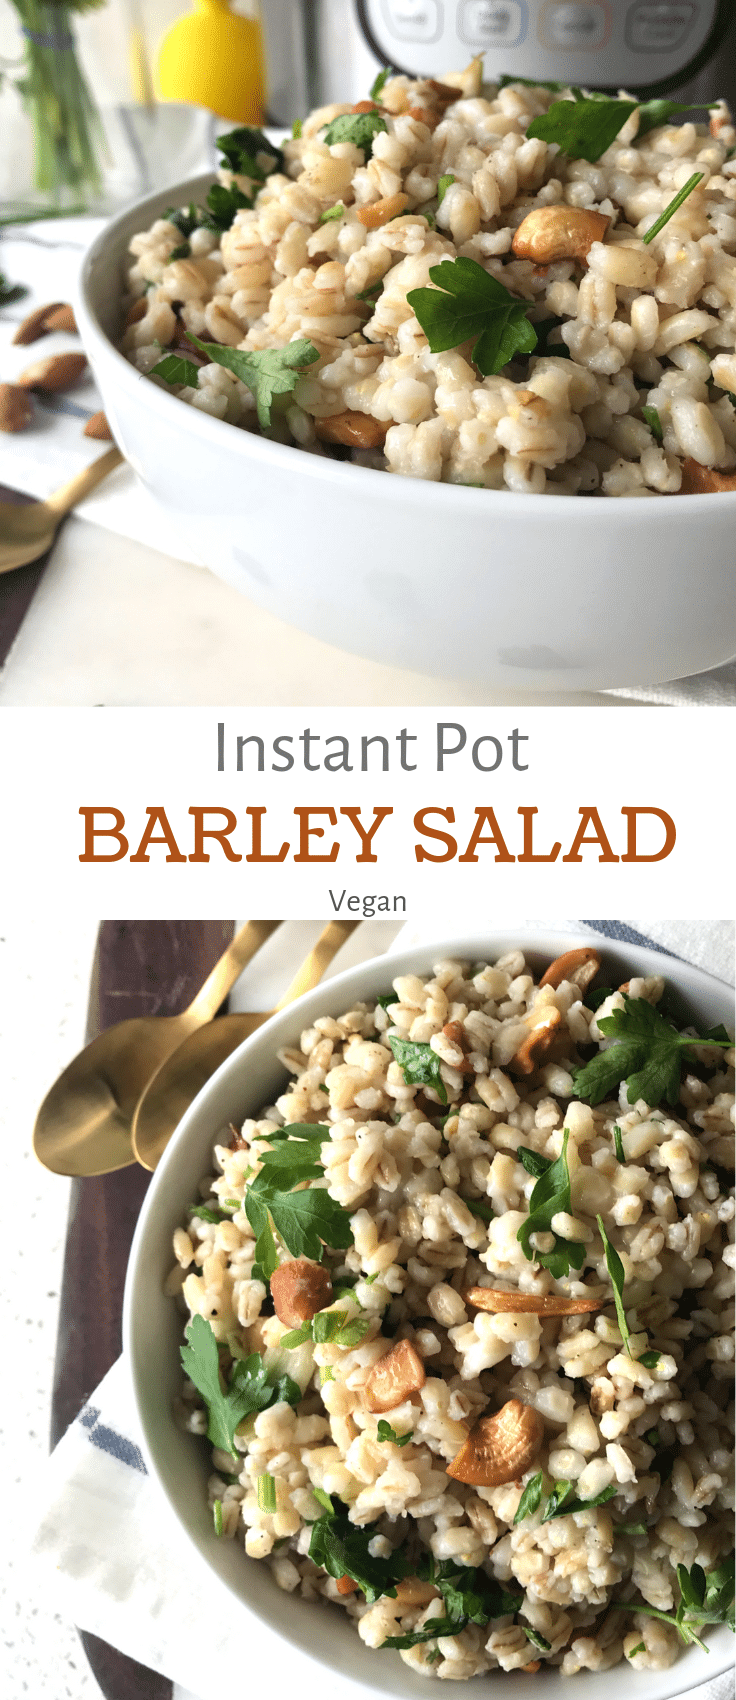 A bowl of barley salad placed on the white table and topped with nuts